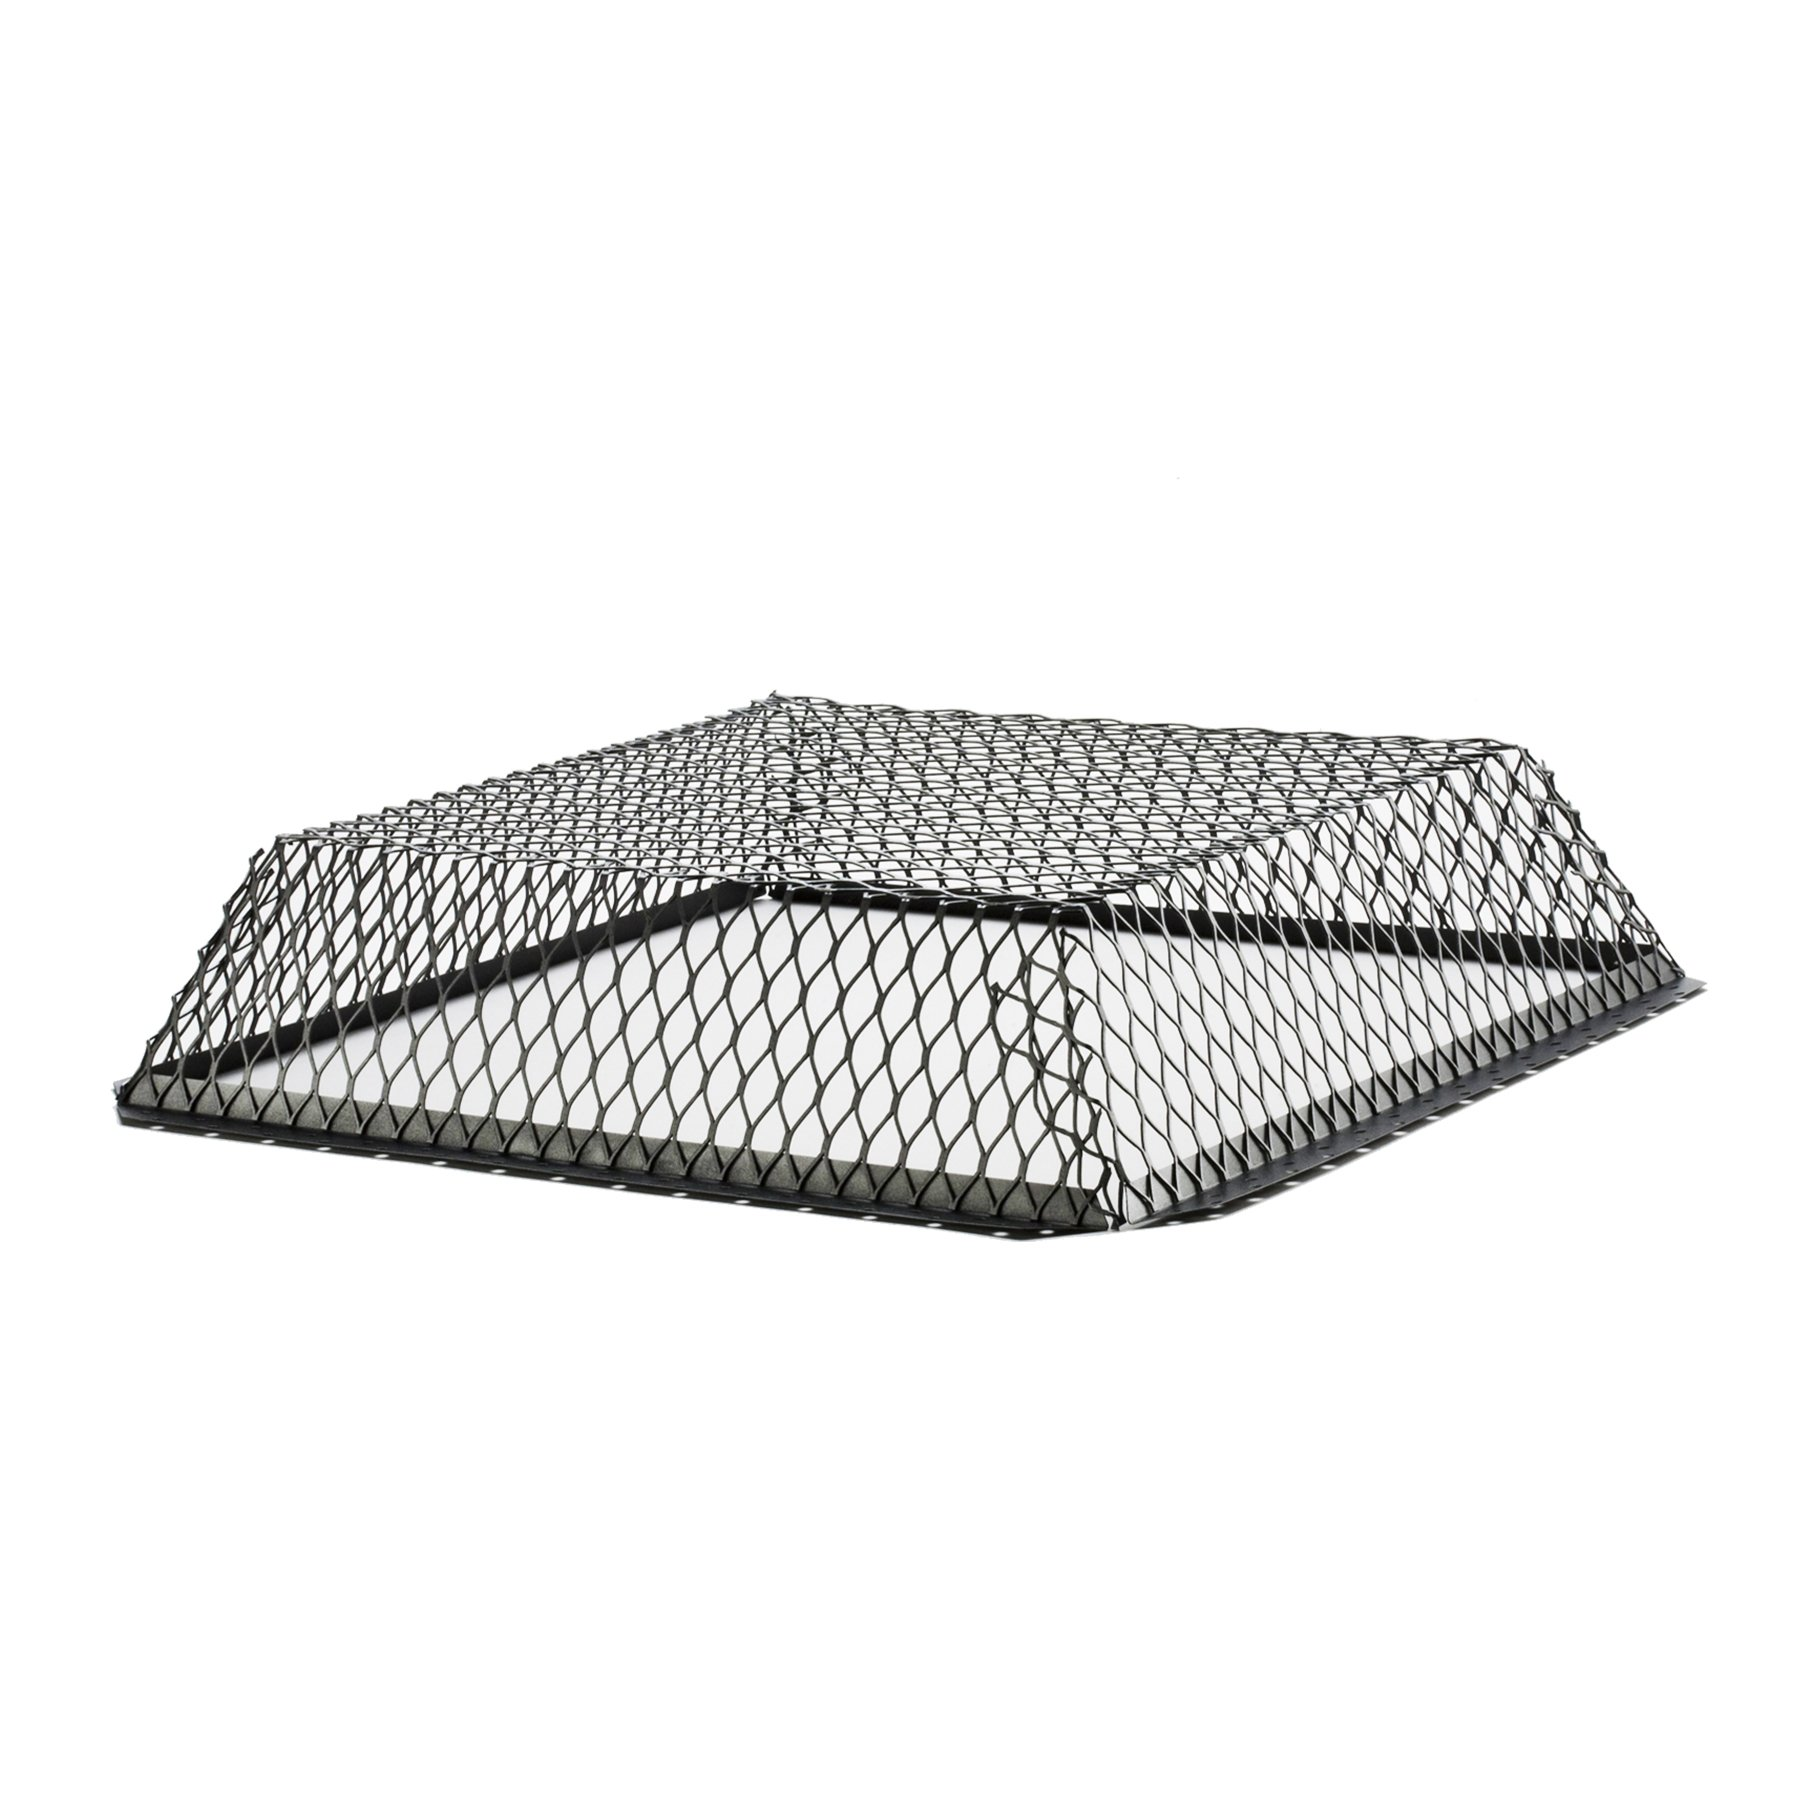 HY-C RVG2525LG Wildlife Exclusion Screen Galvanized Black Roof VentGuard, 25'' x 25'' x 6''